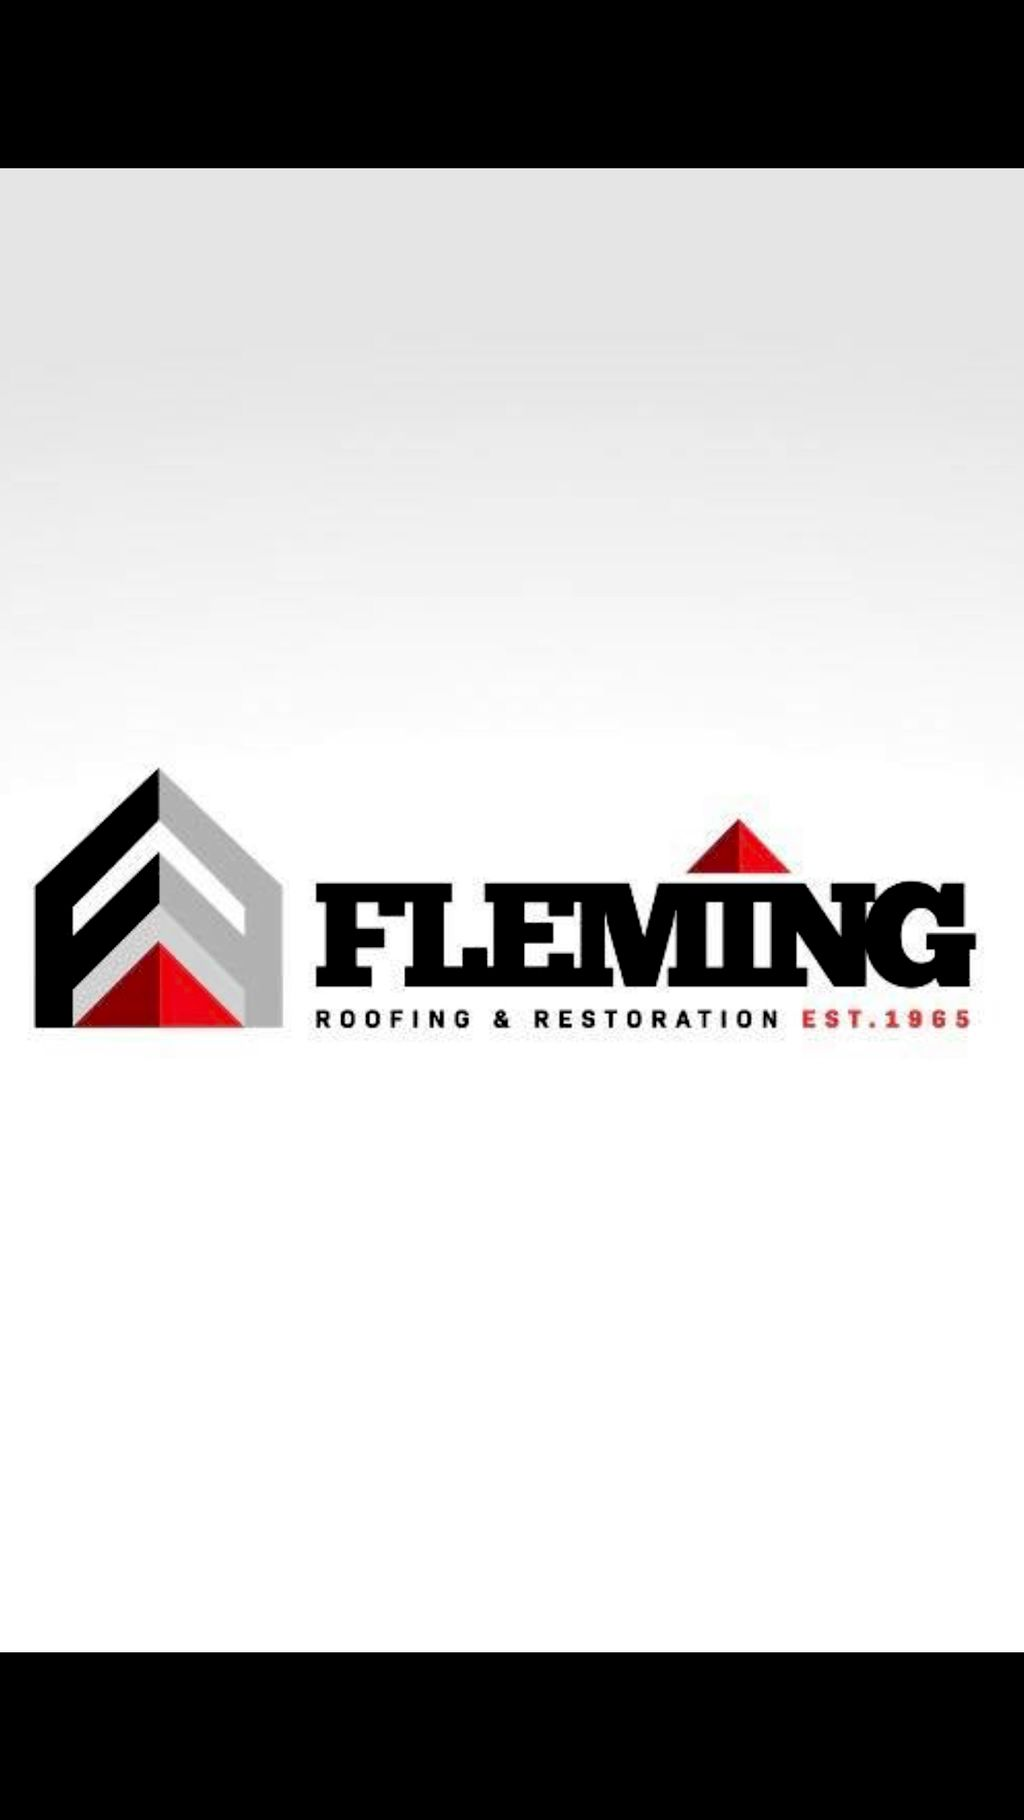 Fleming Roofing & Restoration